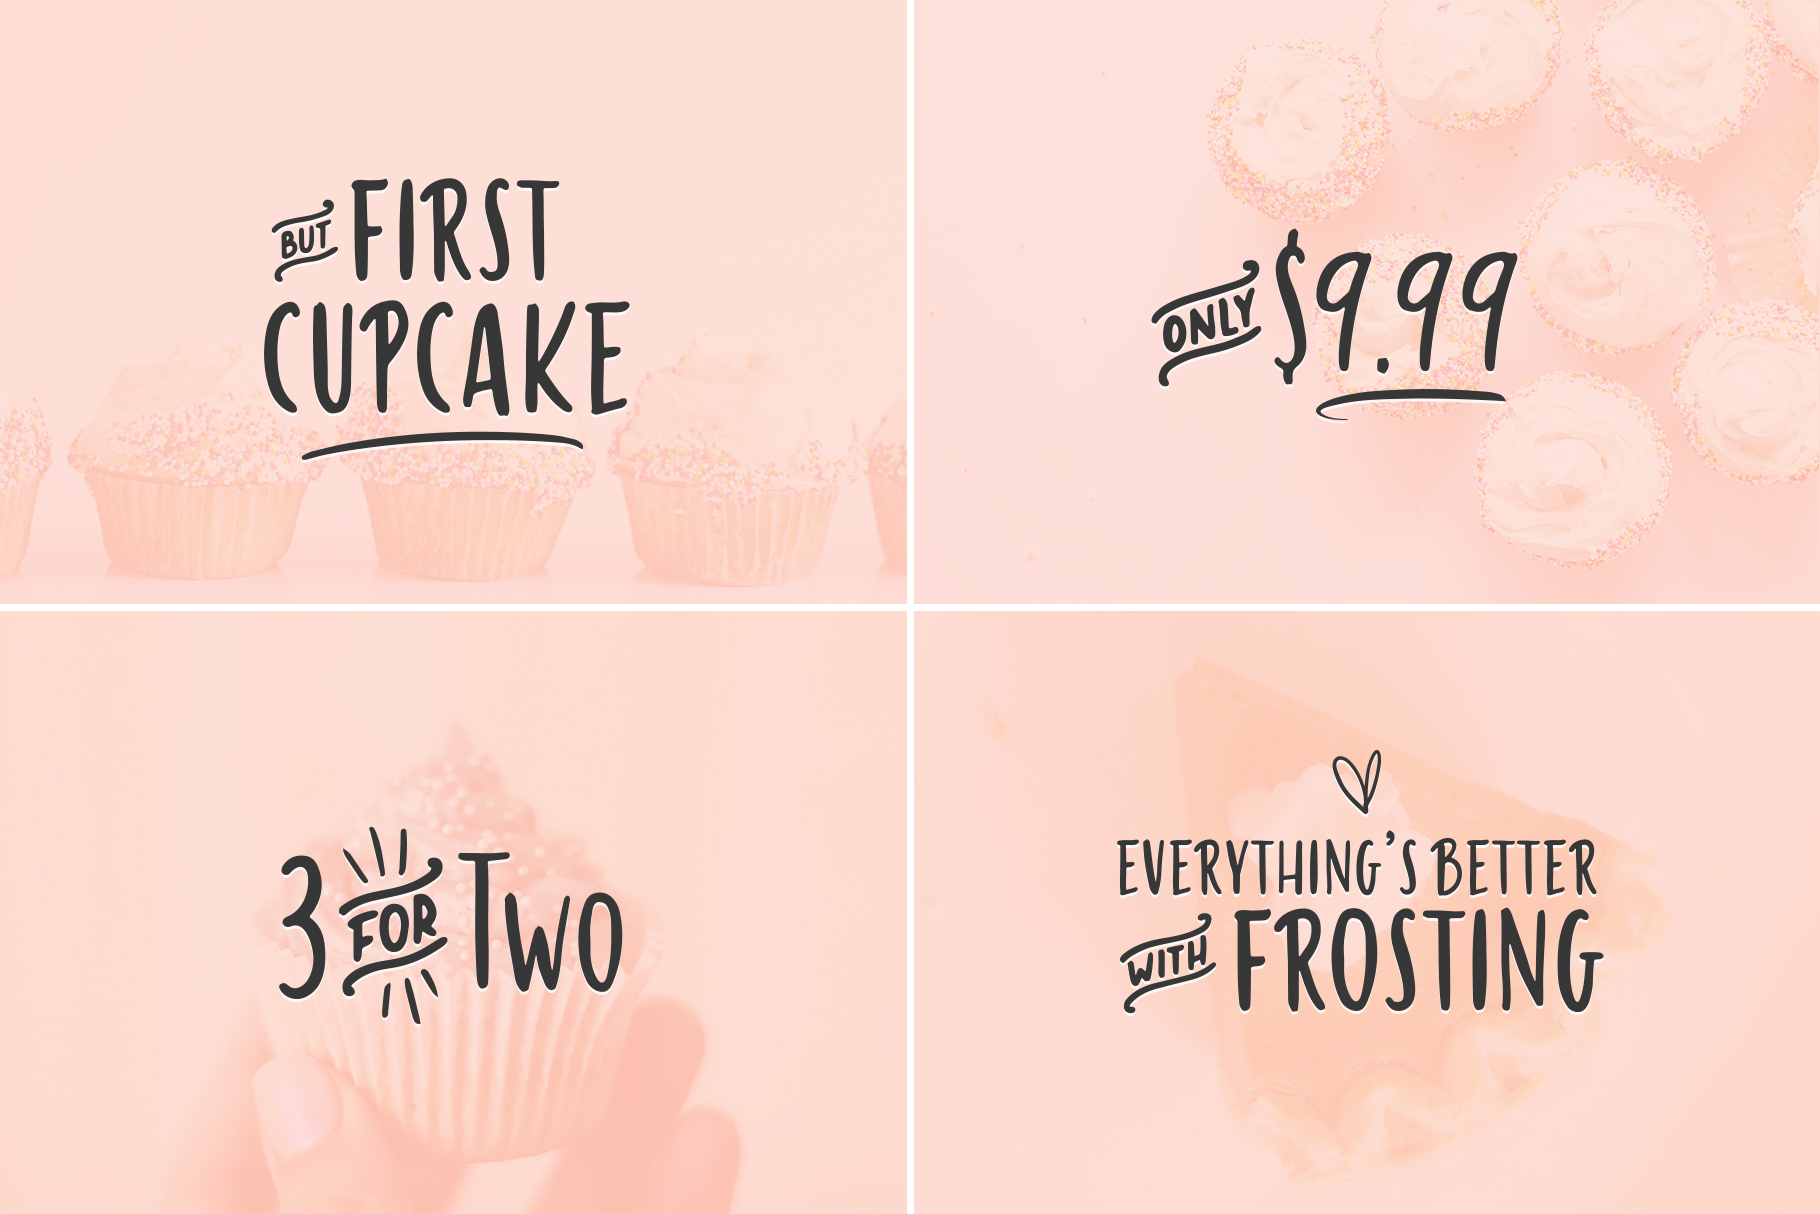 Cake & Cutie | A Handwritten Typeface example image 5